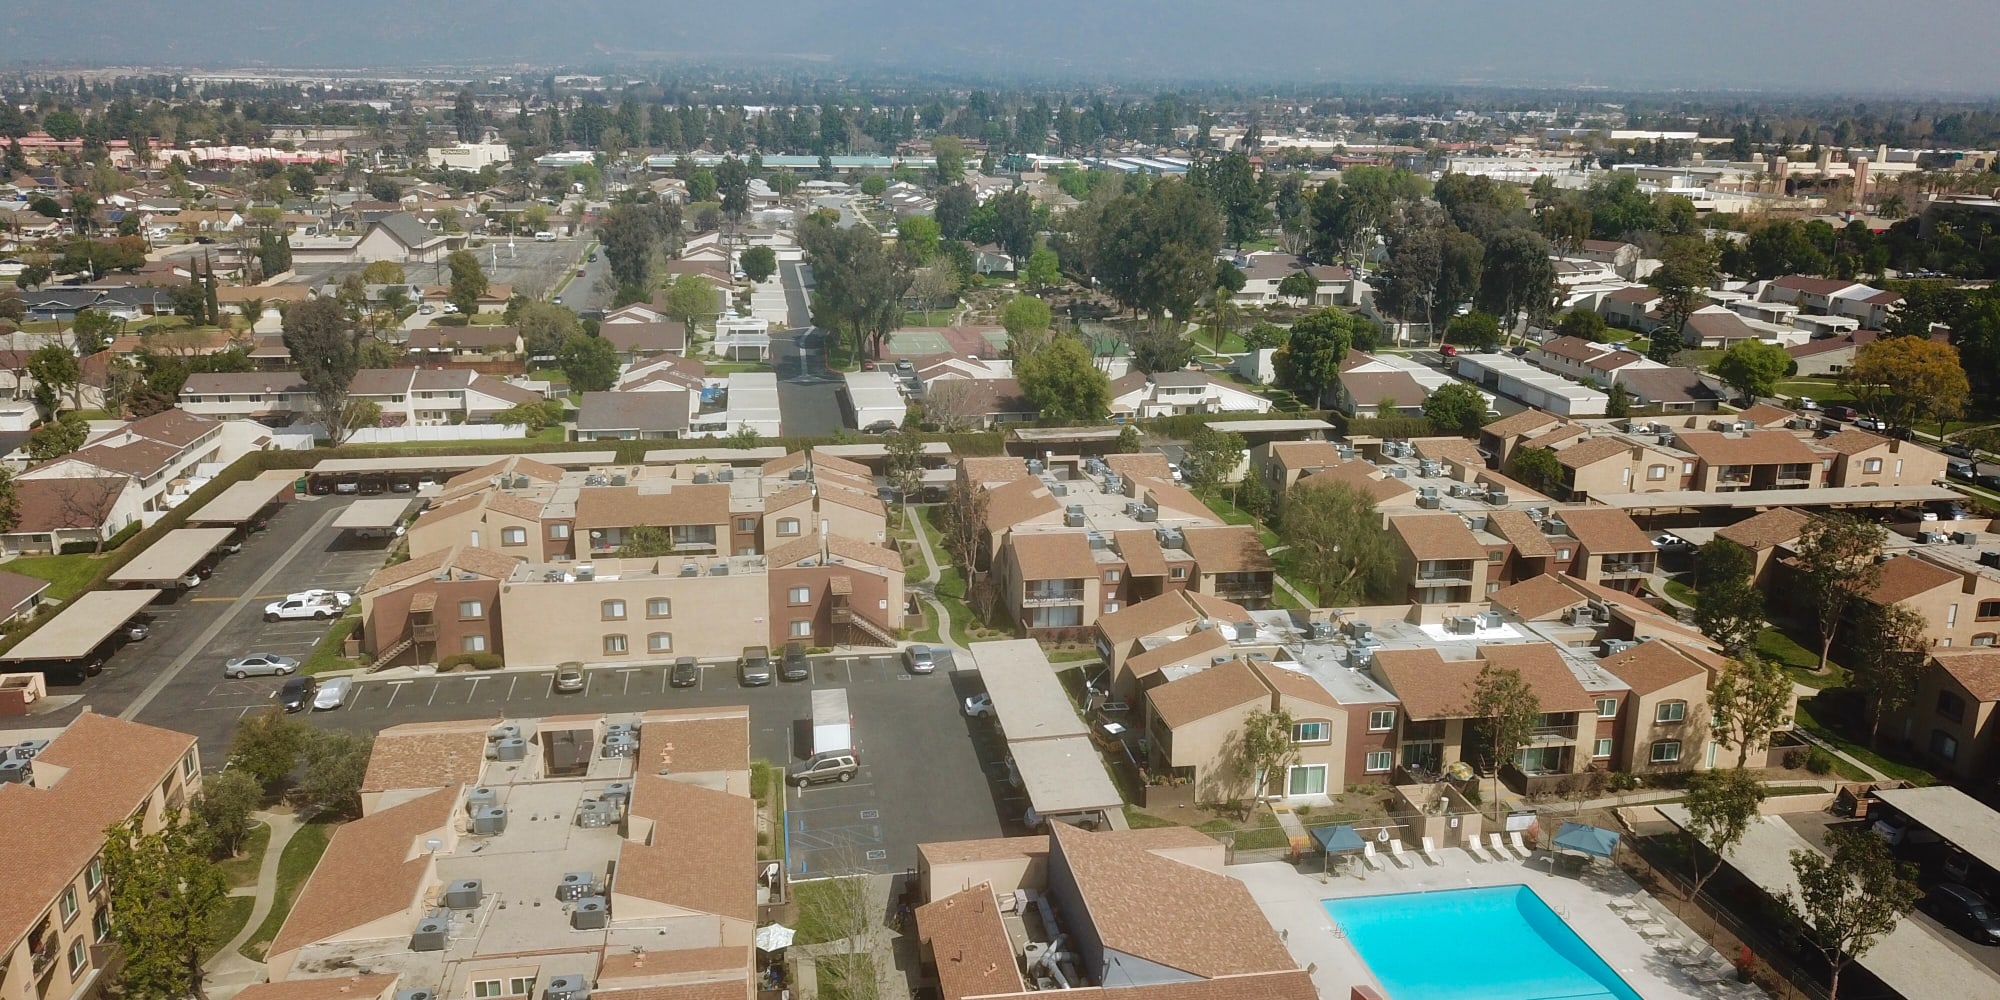 Aerial view of West Fifth Apartments's surrounding neighborhood in Ontario, California